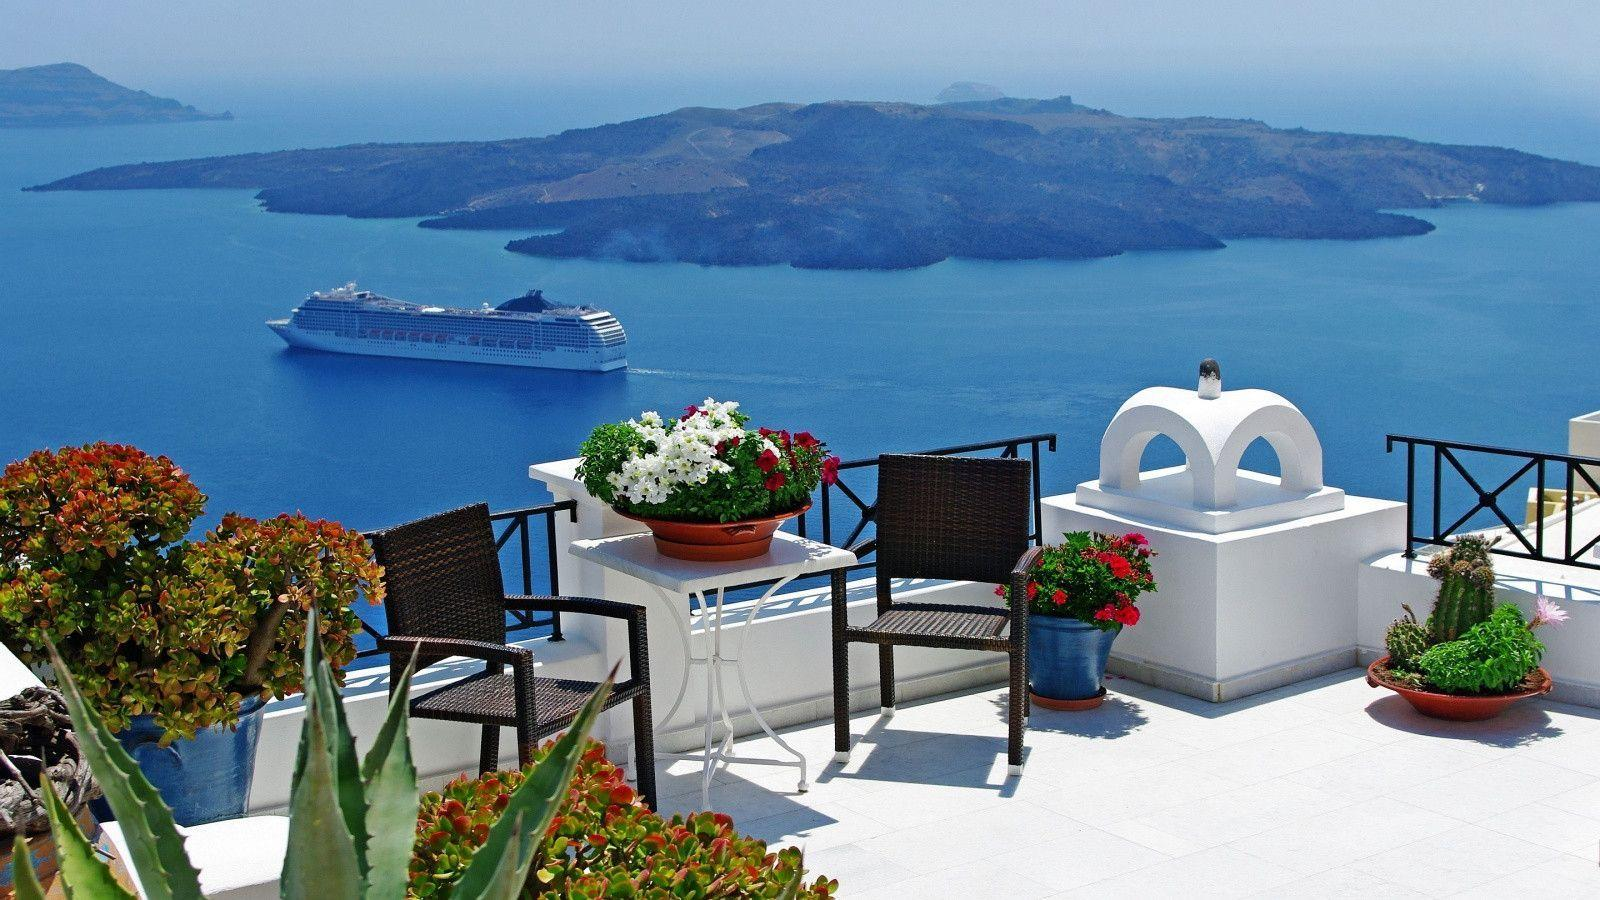 Santorini Wallpapers Anime HD Wallpapers Pictures